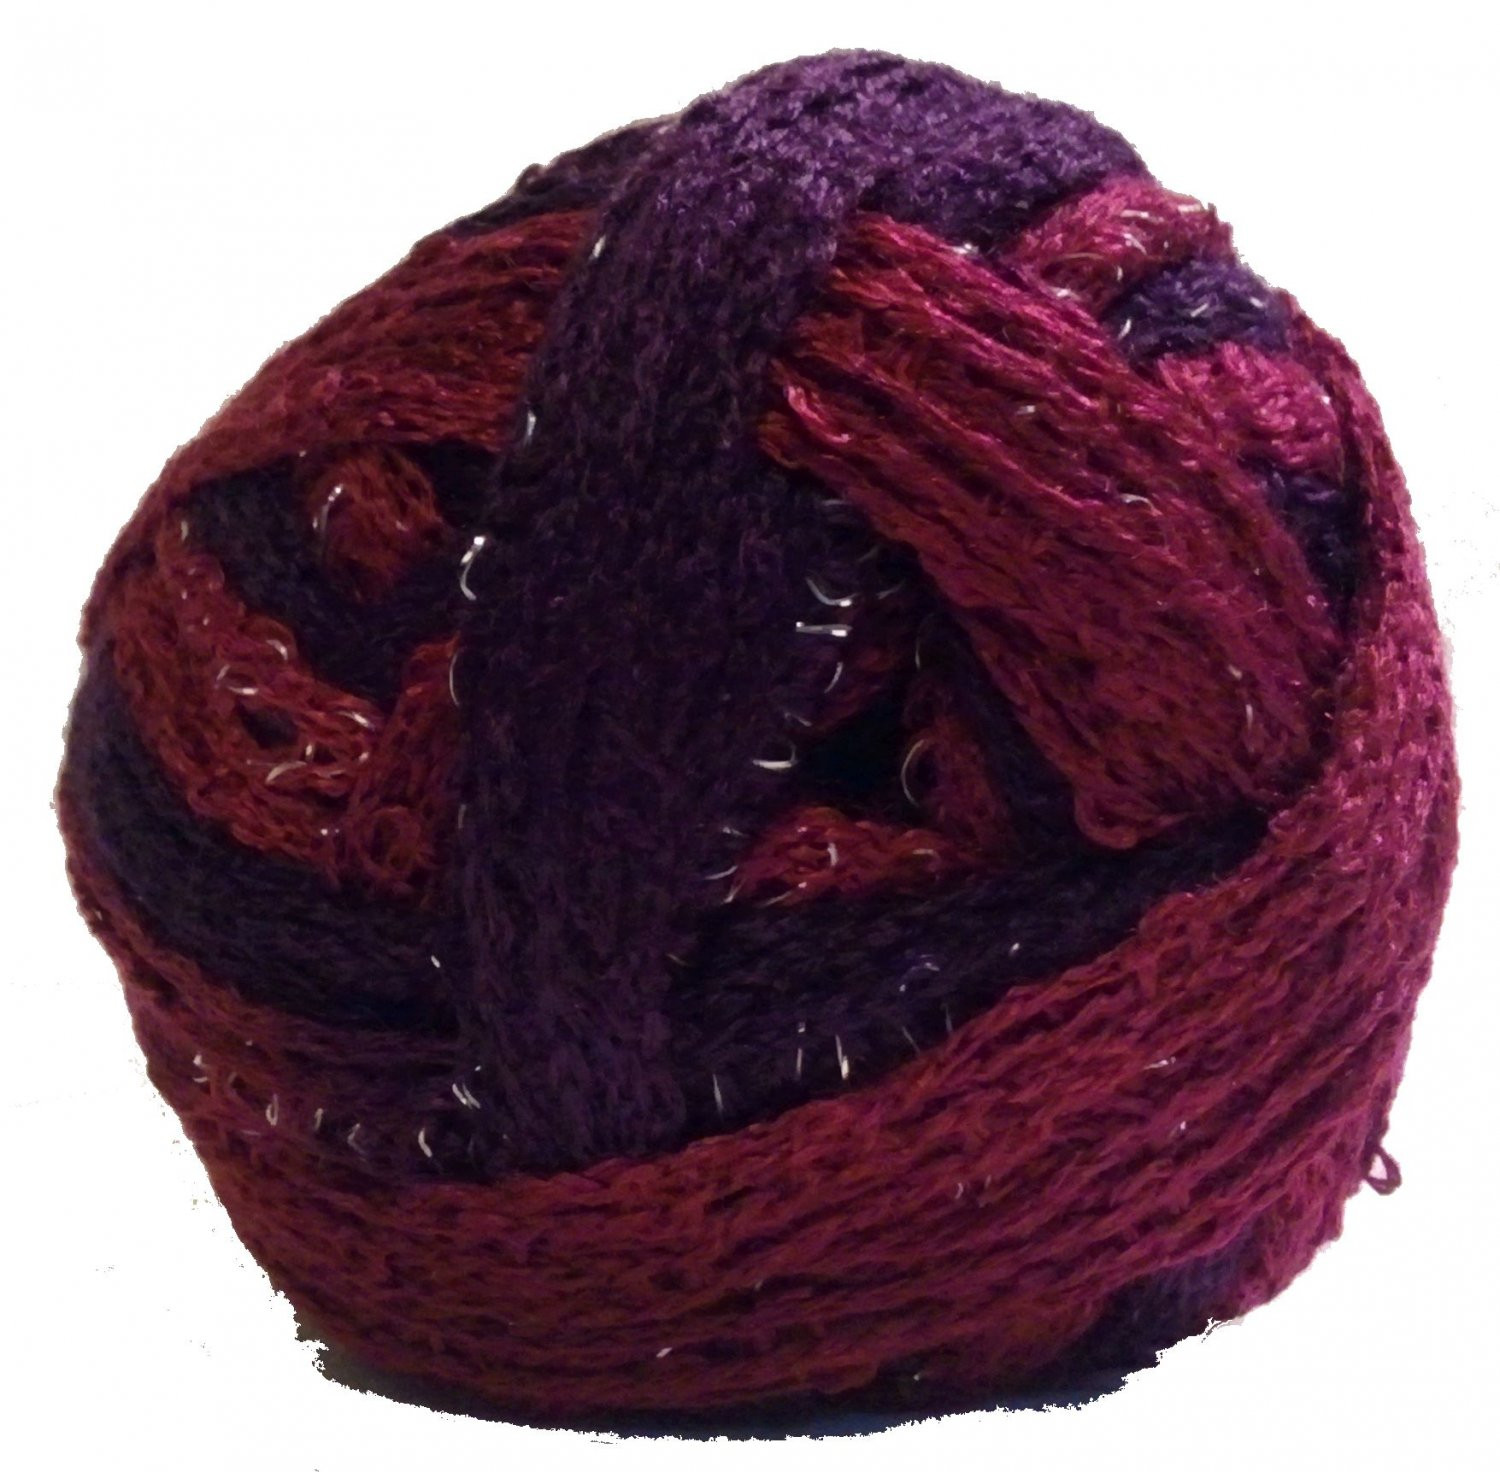 6 Super Bulky Yarn Luxury Sashay Yarn 3 5 Oz Tango 1943 Super Bulky 6 Ruffle Scarf Of Gorgeous 50 Pics 6 Super Bulky Yarn